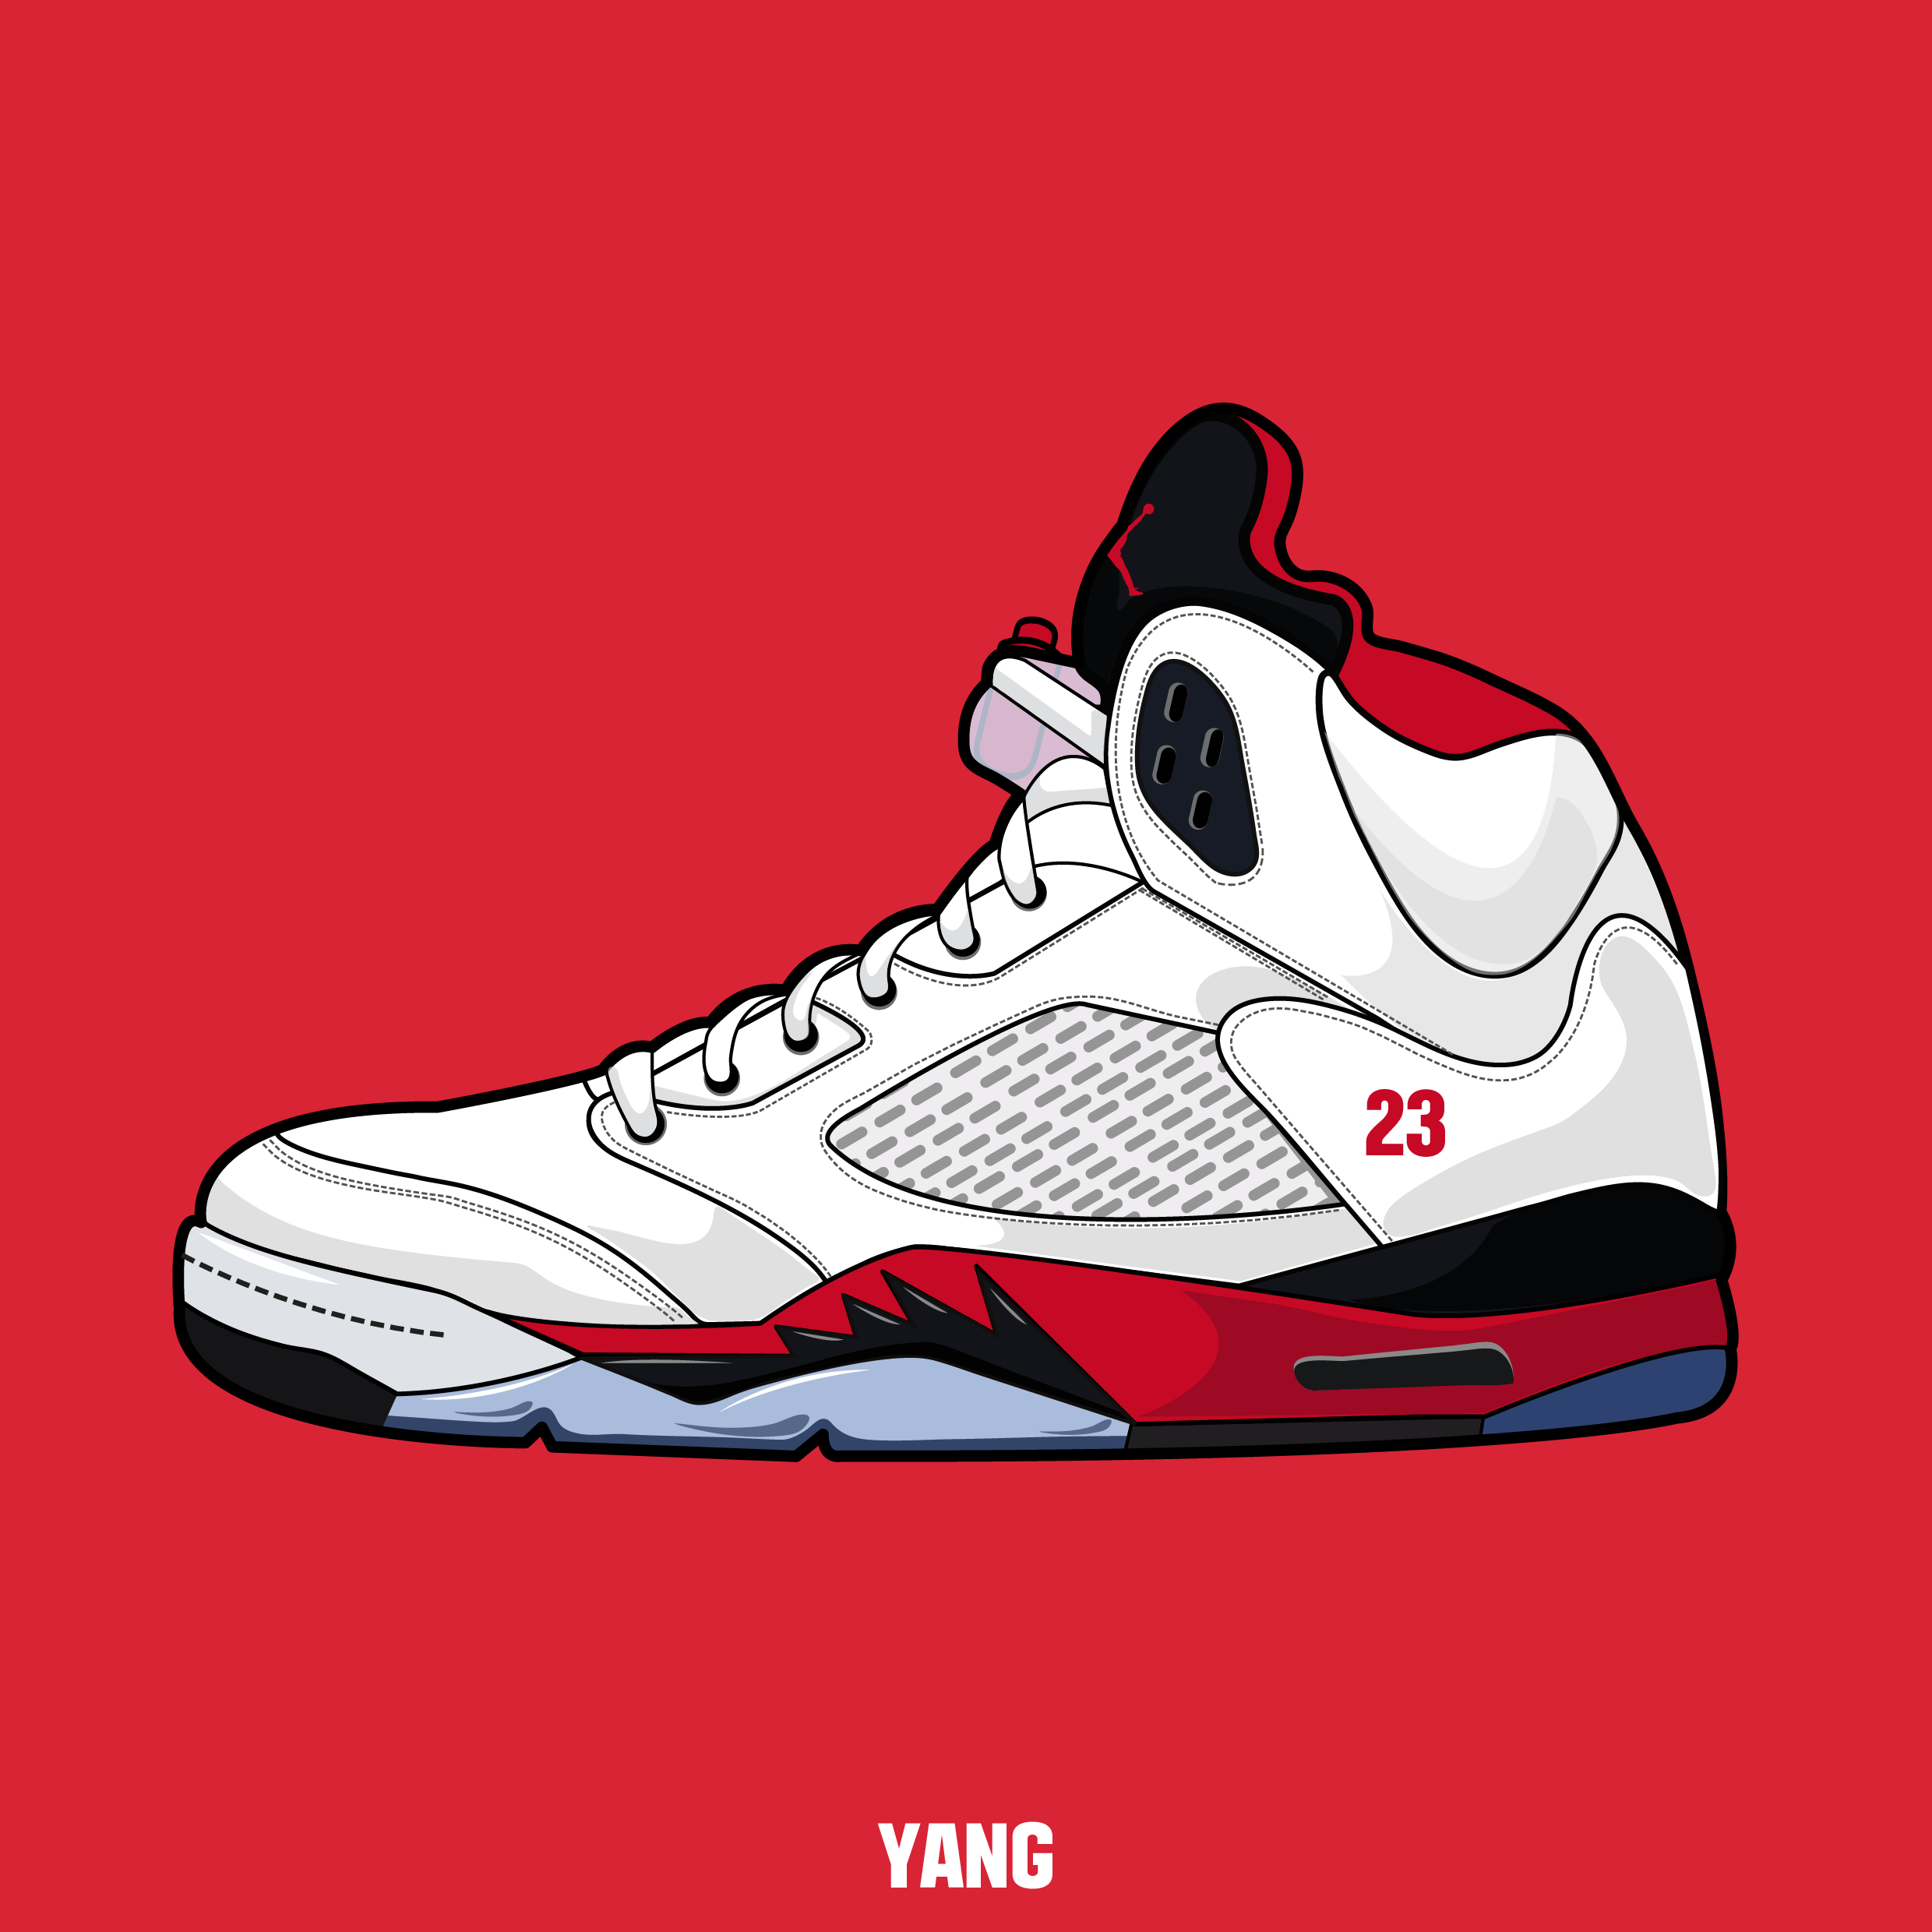 This is another air jordan design and this one is a basketball shoe. This  is based off Michael Jordan's basketball shoe and is the most expensive  line of ...